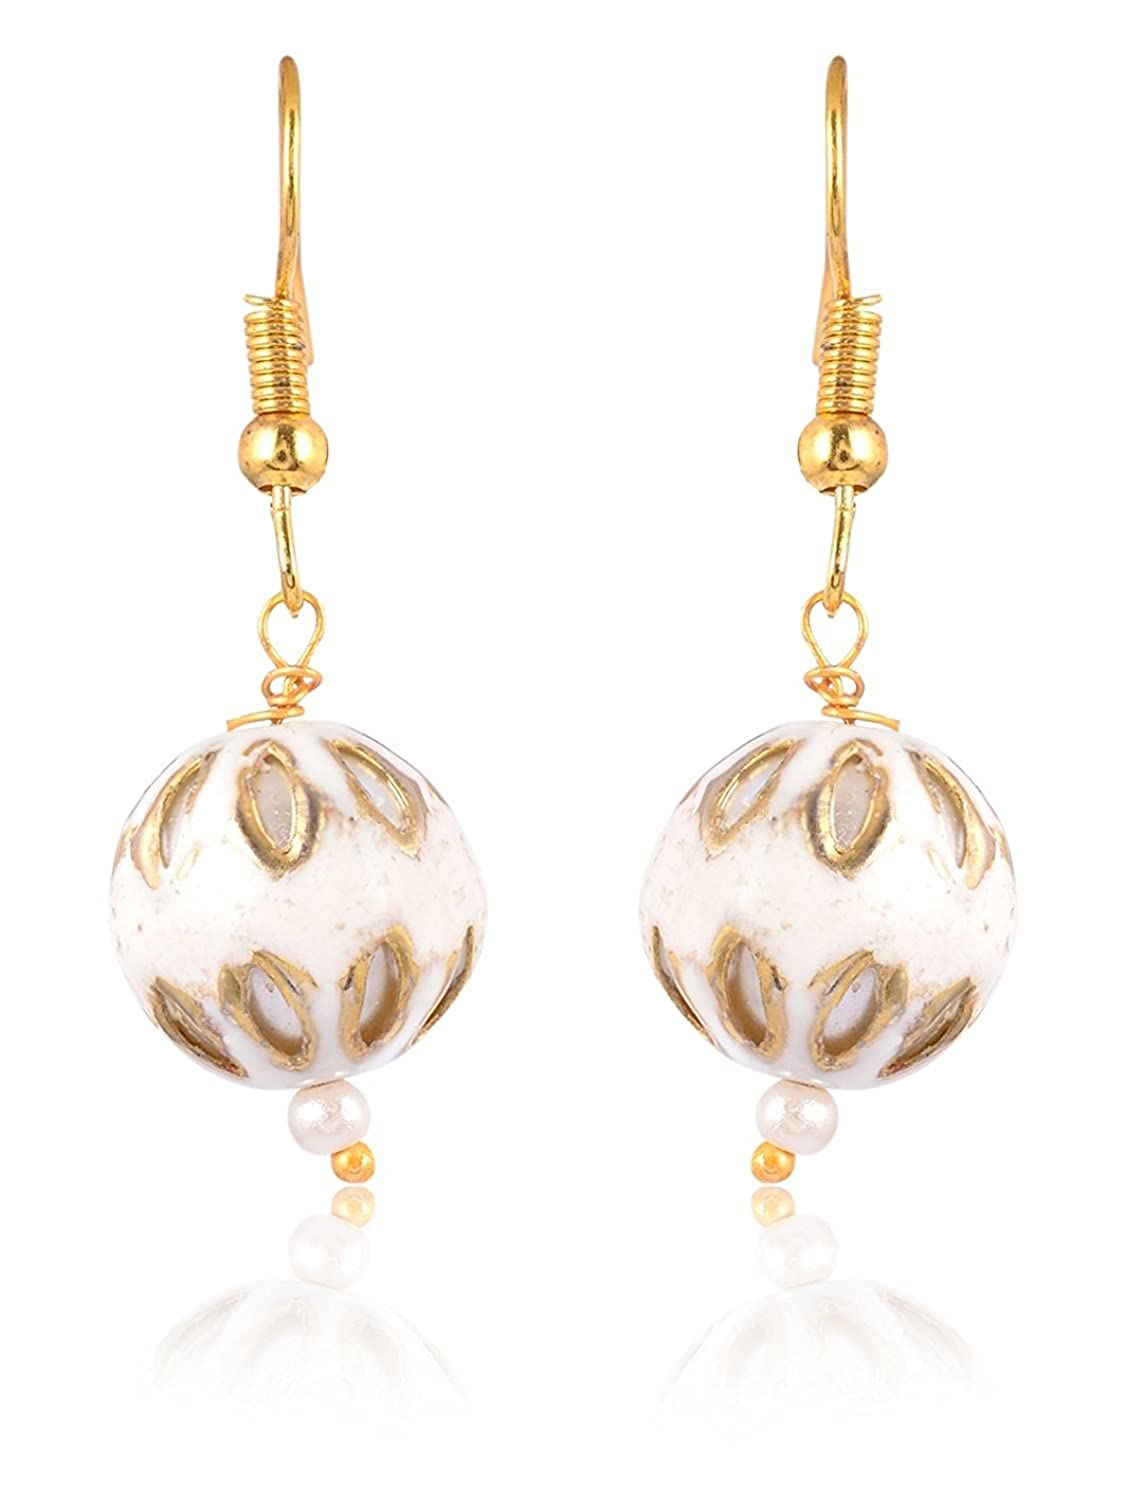 Subharpit White Color Pearl Golden Color Metal Non Precious Indian Ethnic Tratitional Drop